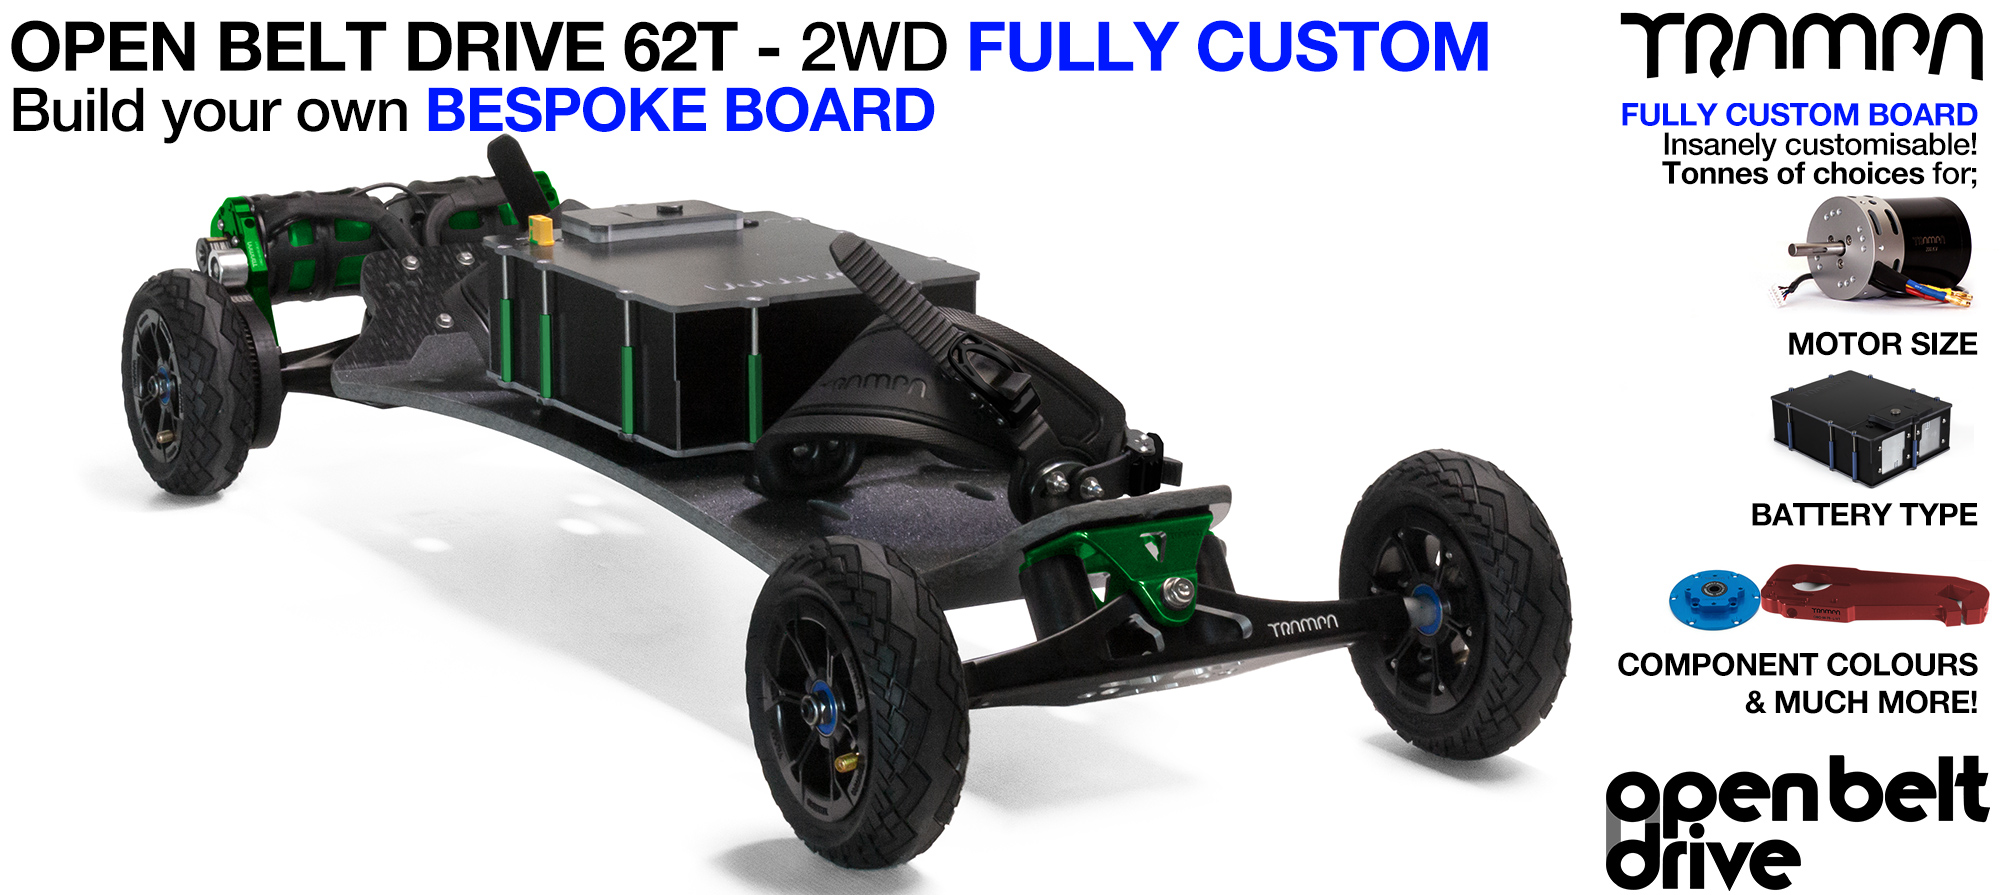 2WD 66T Open Belt Drive TRAMPA Electric Mountainboard with 6 Inch URBAN TREADs Wheels & 62 Tooth Pulleys - CUSTOM